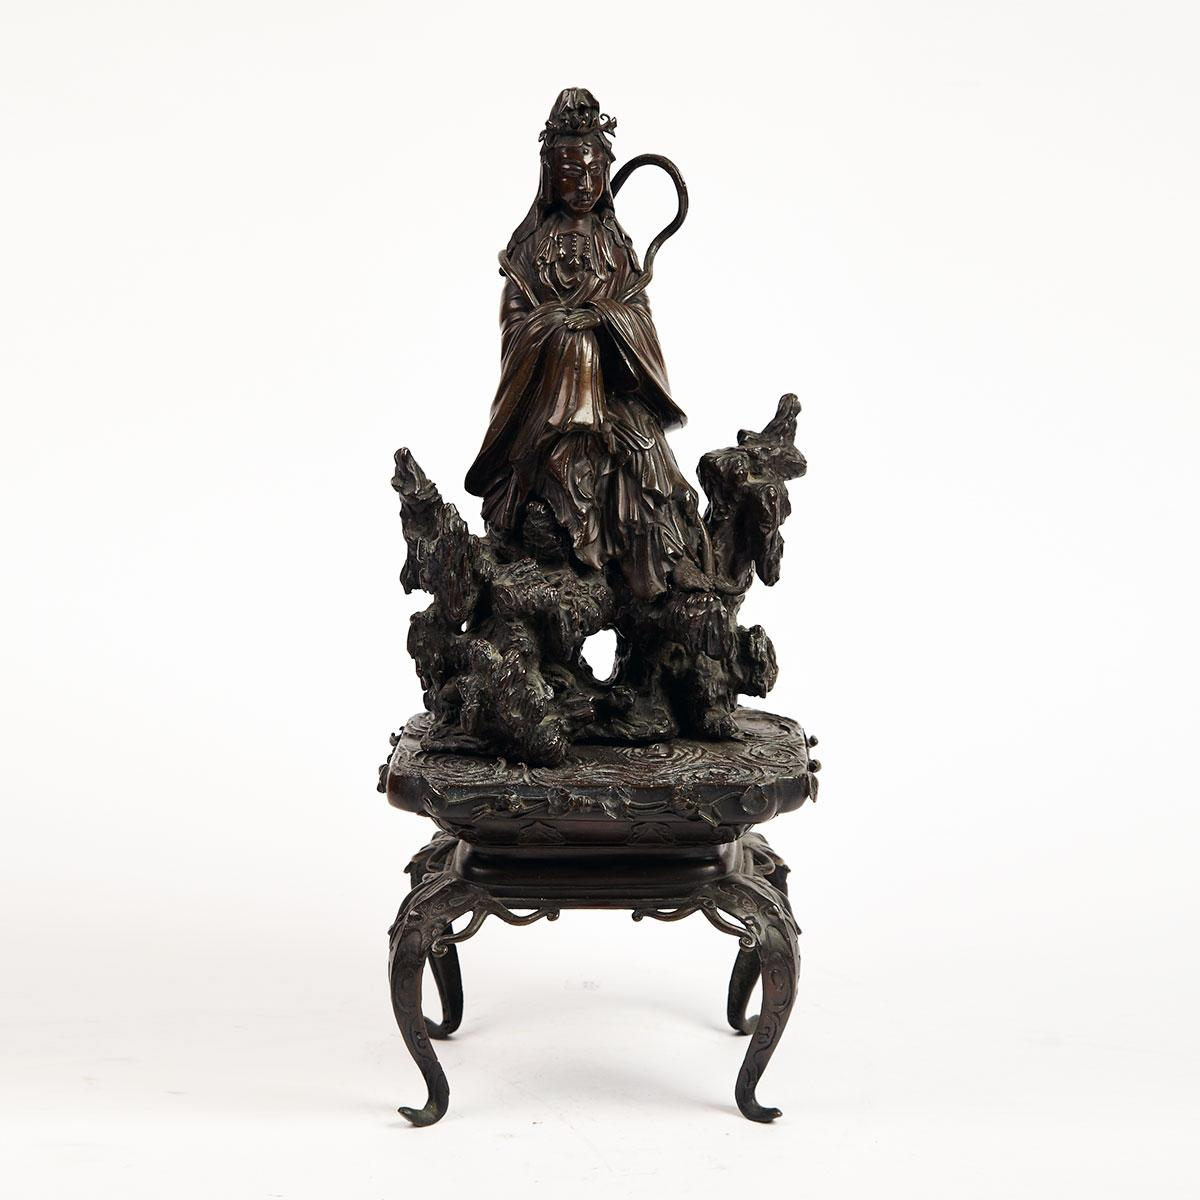 Well-Cast Bronze Figure of Seated Kannon, Meiji Period, Late 19th Century